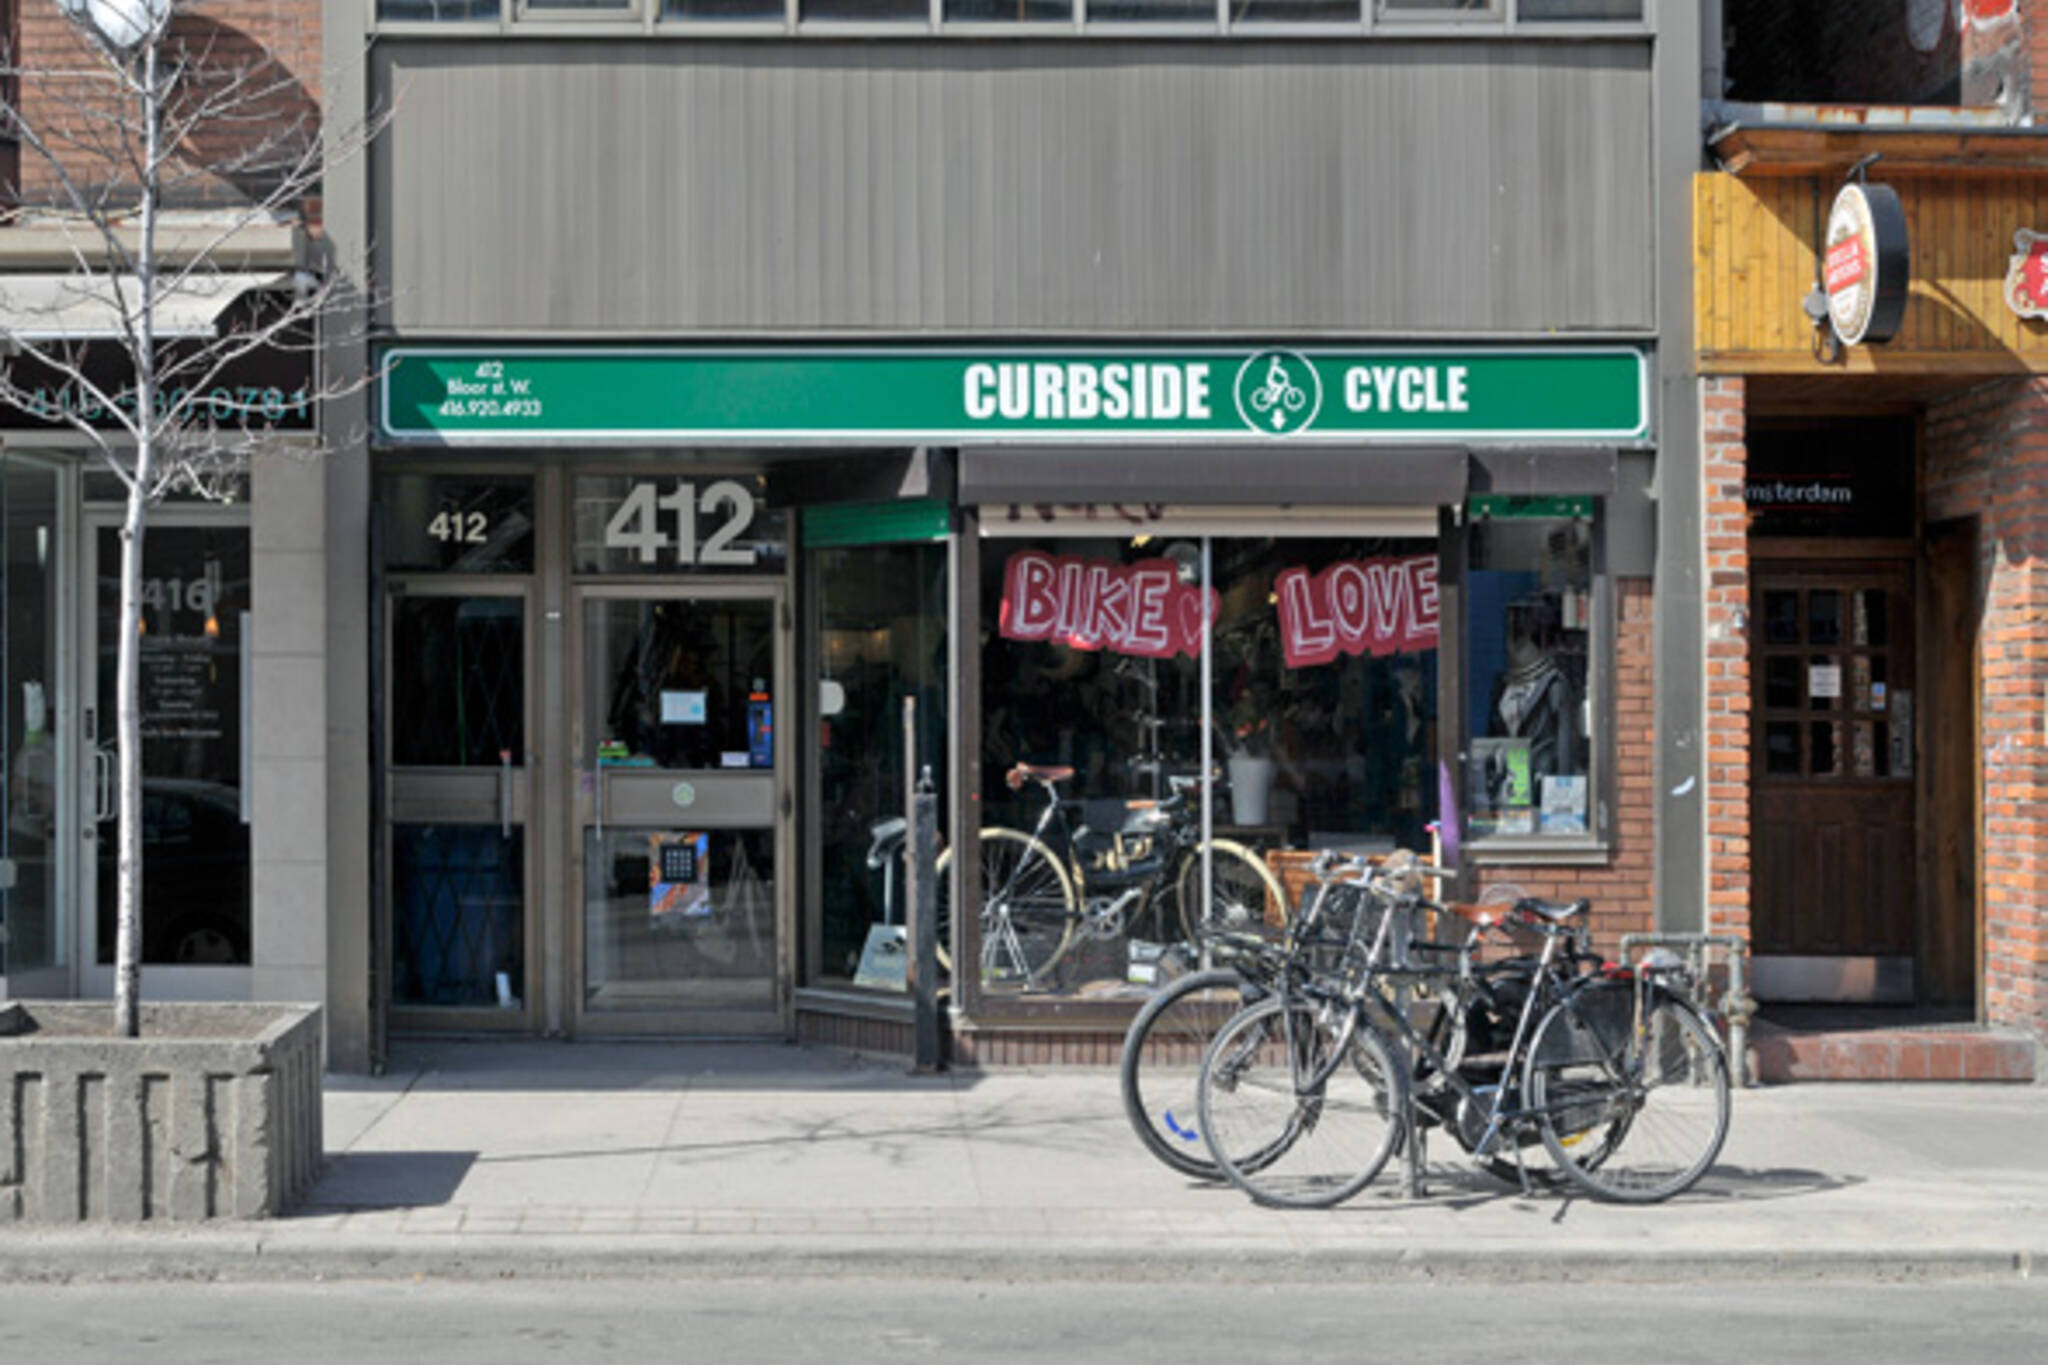 Curbside Cycle Annex